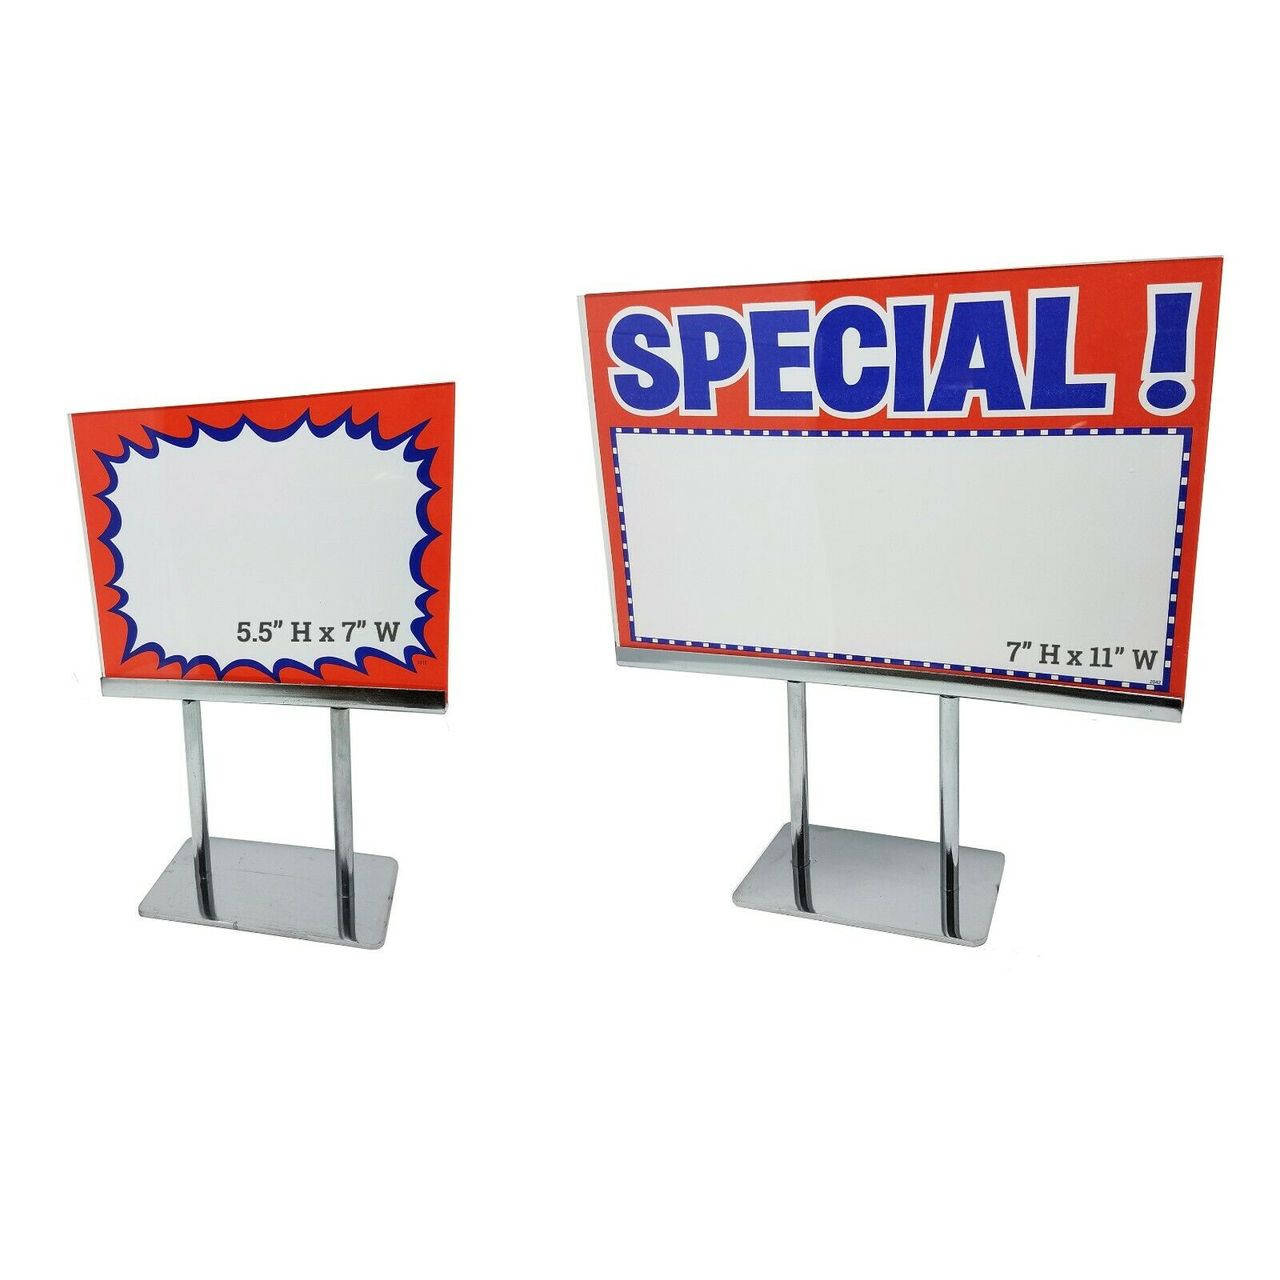 Countertop Signs Countertop Acrylic Frame Sign Holder Heavy Duty Chrome Base Tabletop Card Display 10